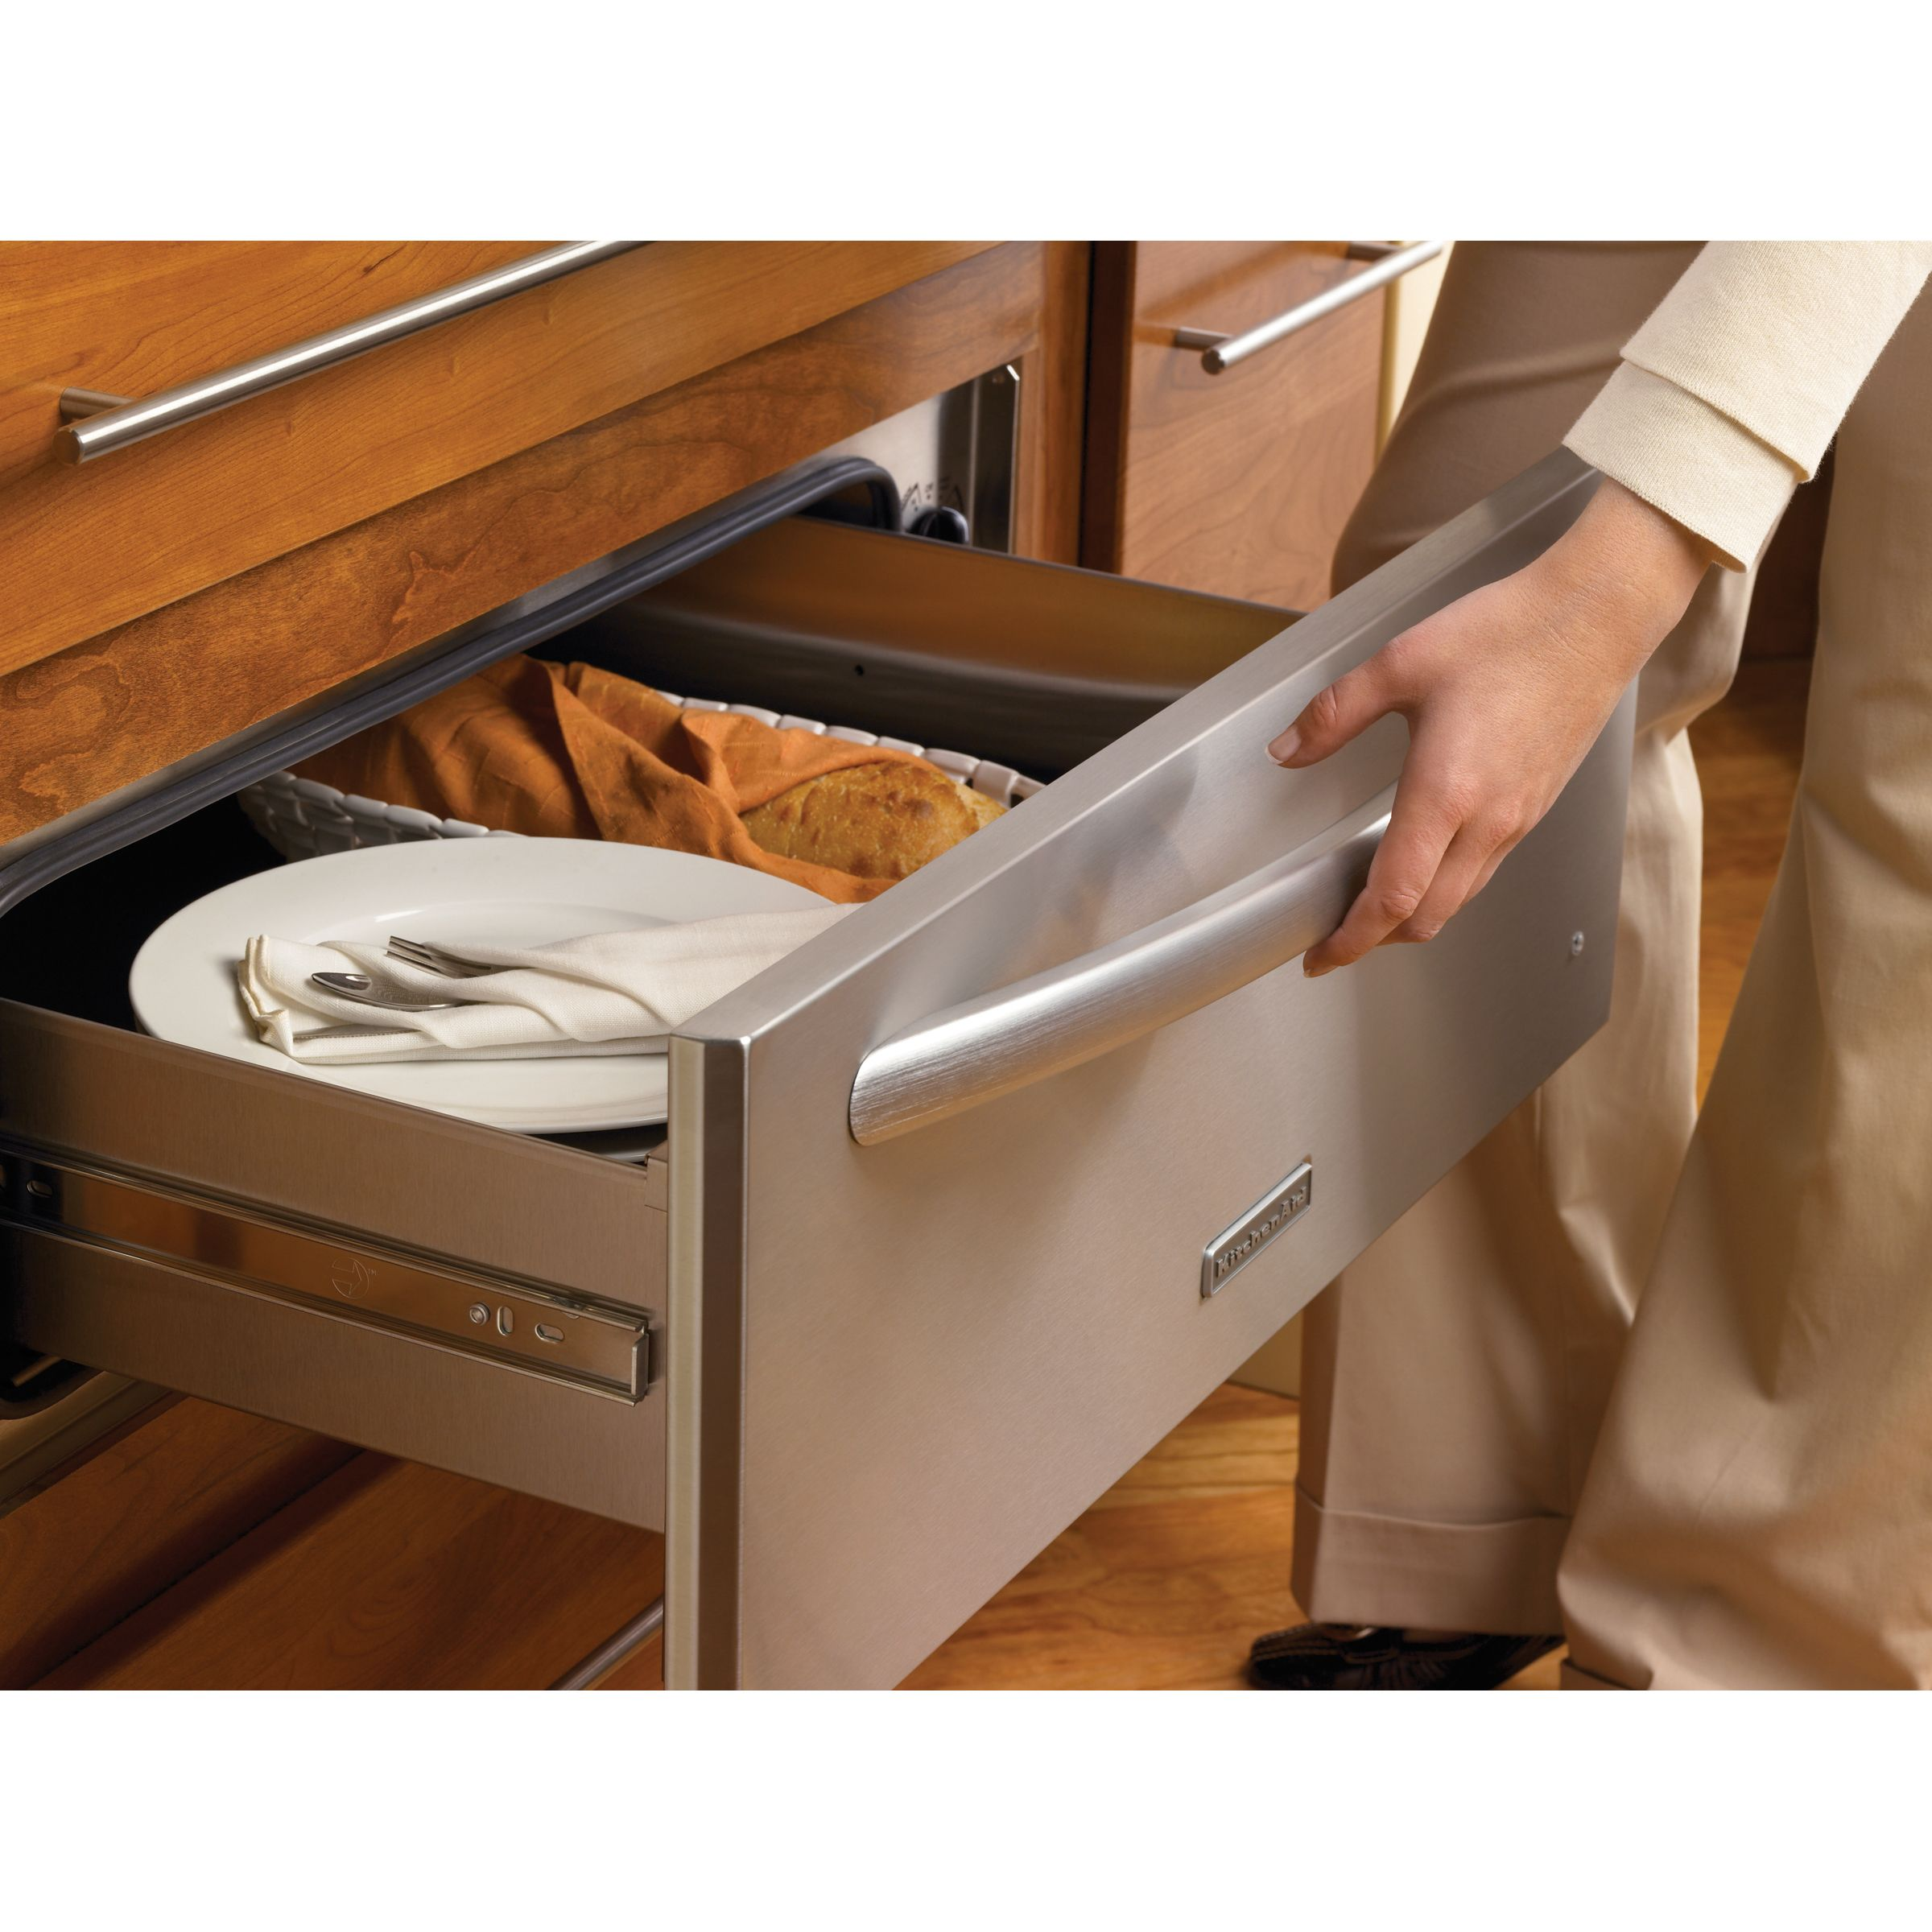 "KitchenAid 24"" Slow-Cook Warming Drawer"